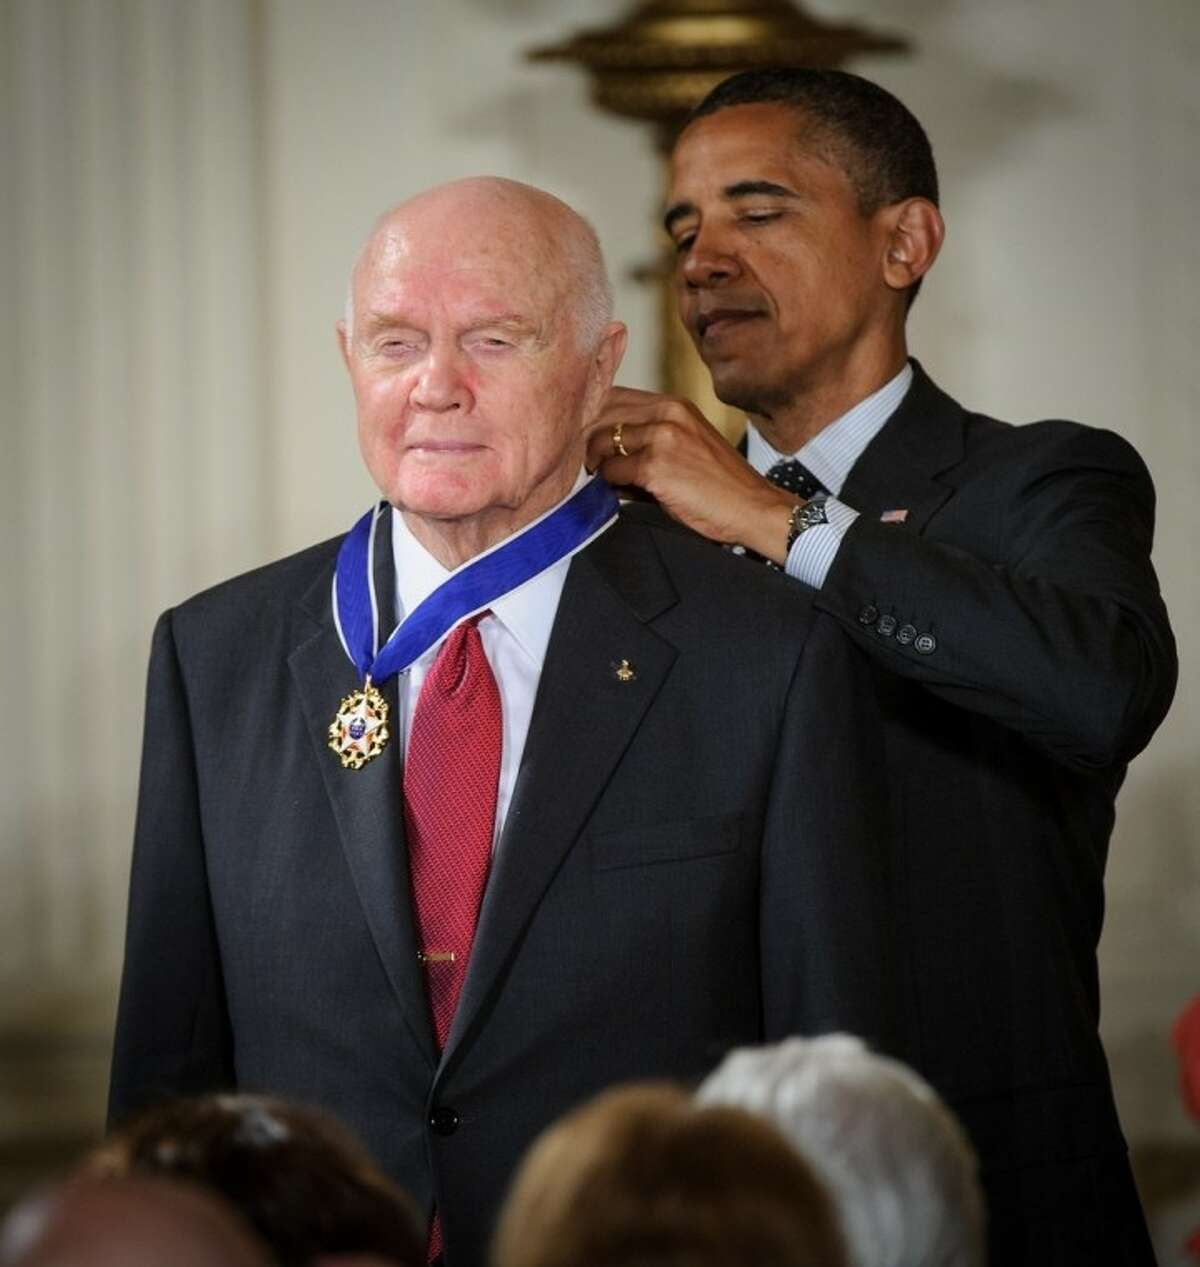 President Barack Obama presents former United States Marine Corps pilot, astronaut, and United States Senator John Glenn with a Medal of Freedom, Tuesday, May 29, during a ceremony at the White House in Washington.